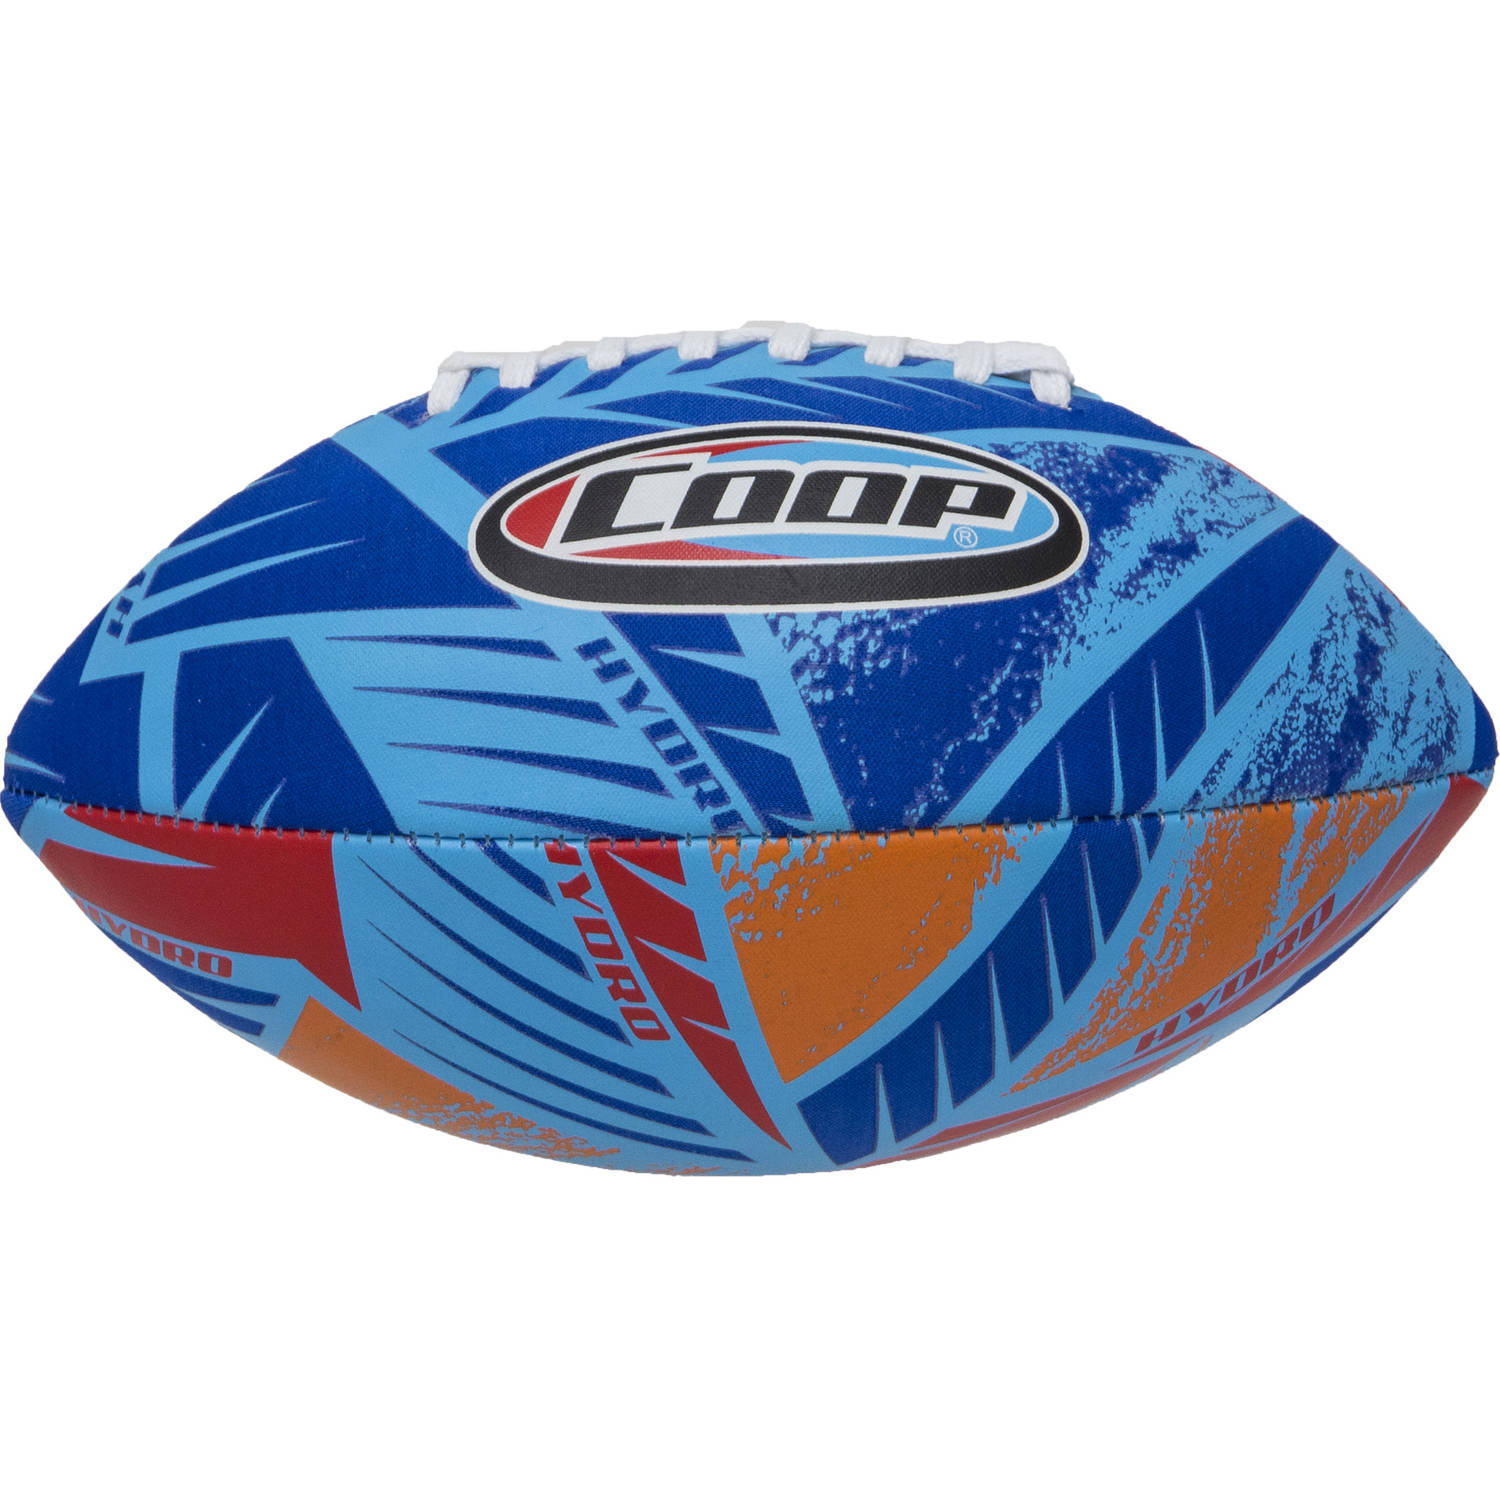 Coop Hydro Football, Taper Blue Red by PACIFIC GLOW LIMITED